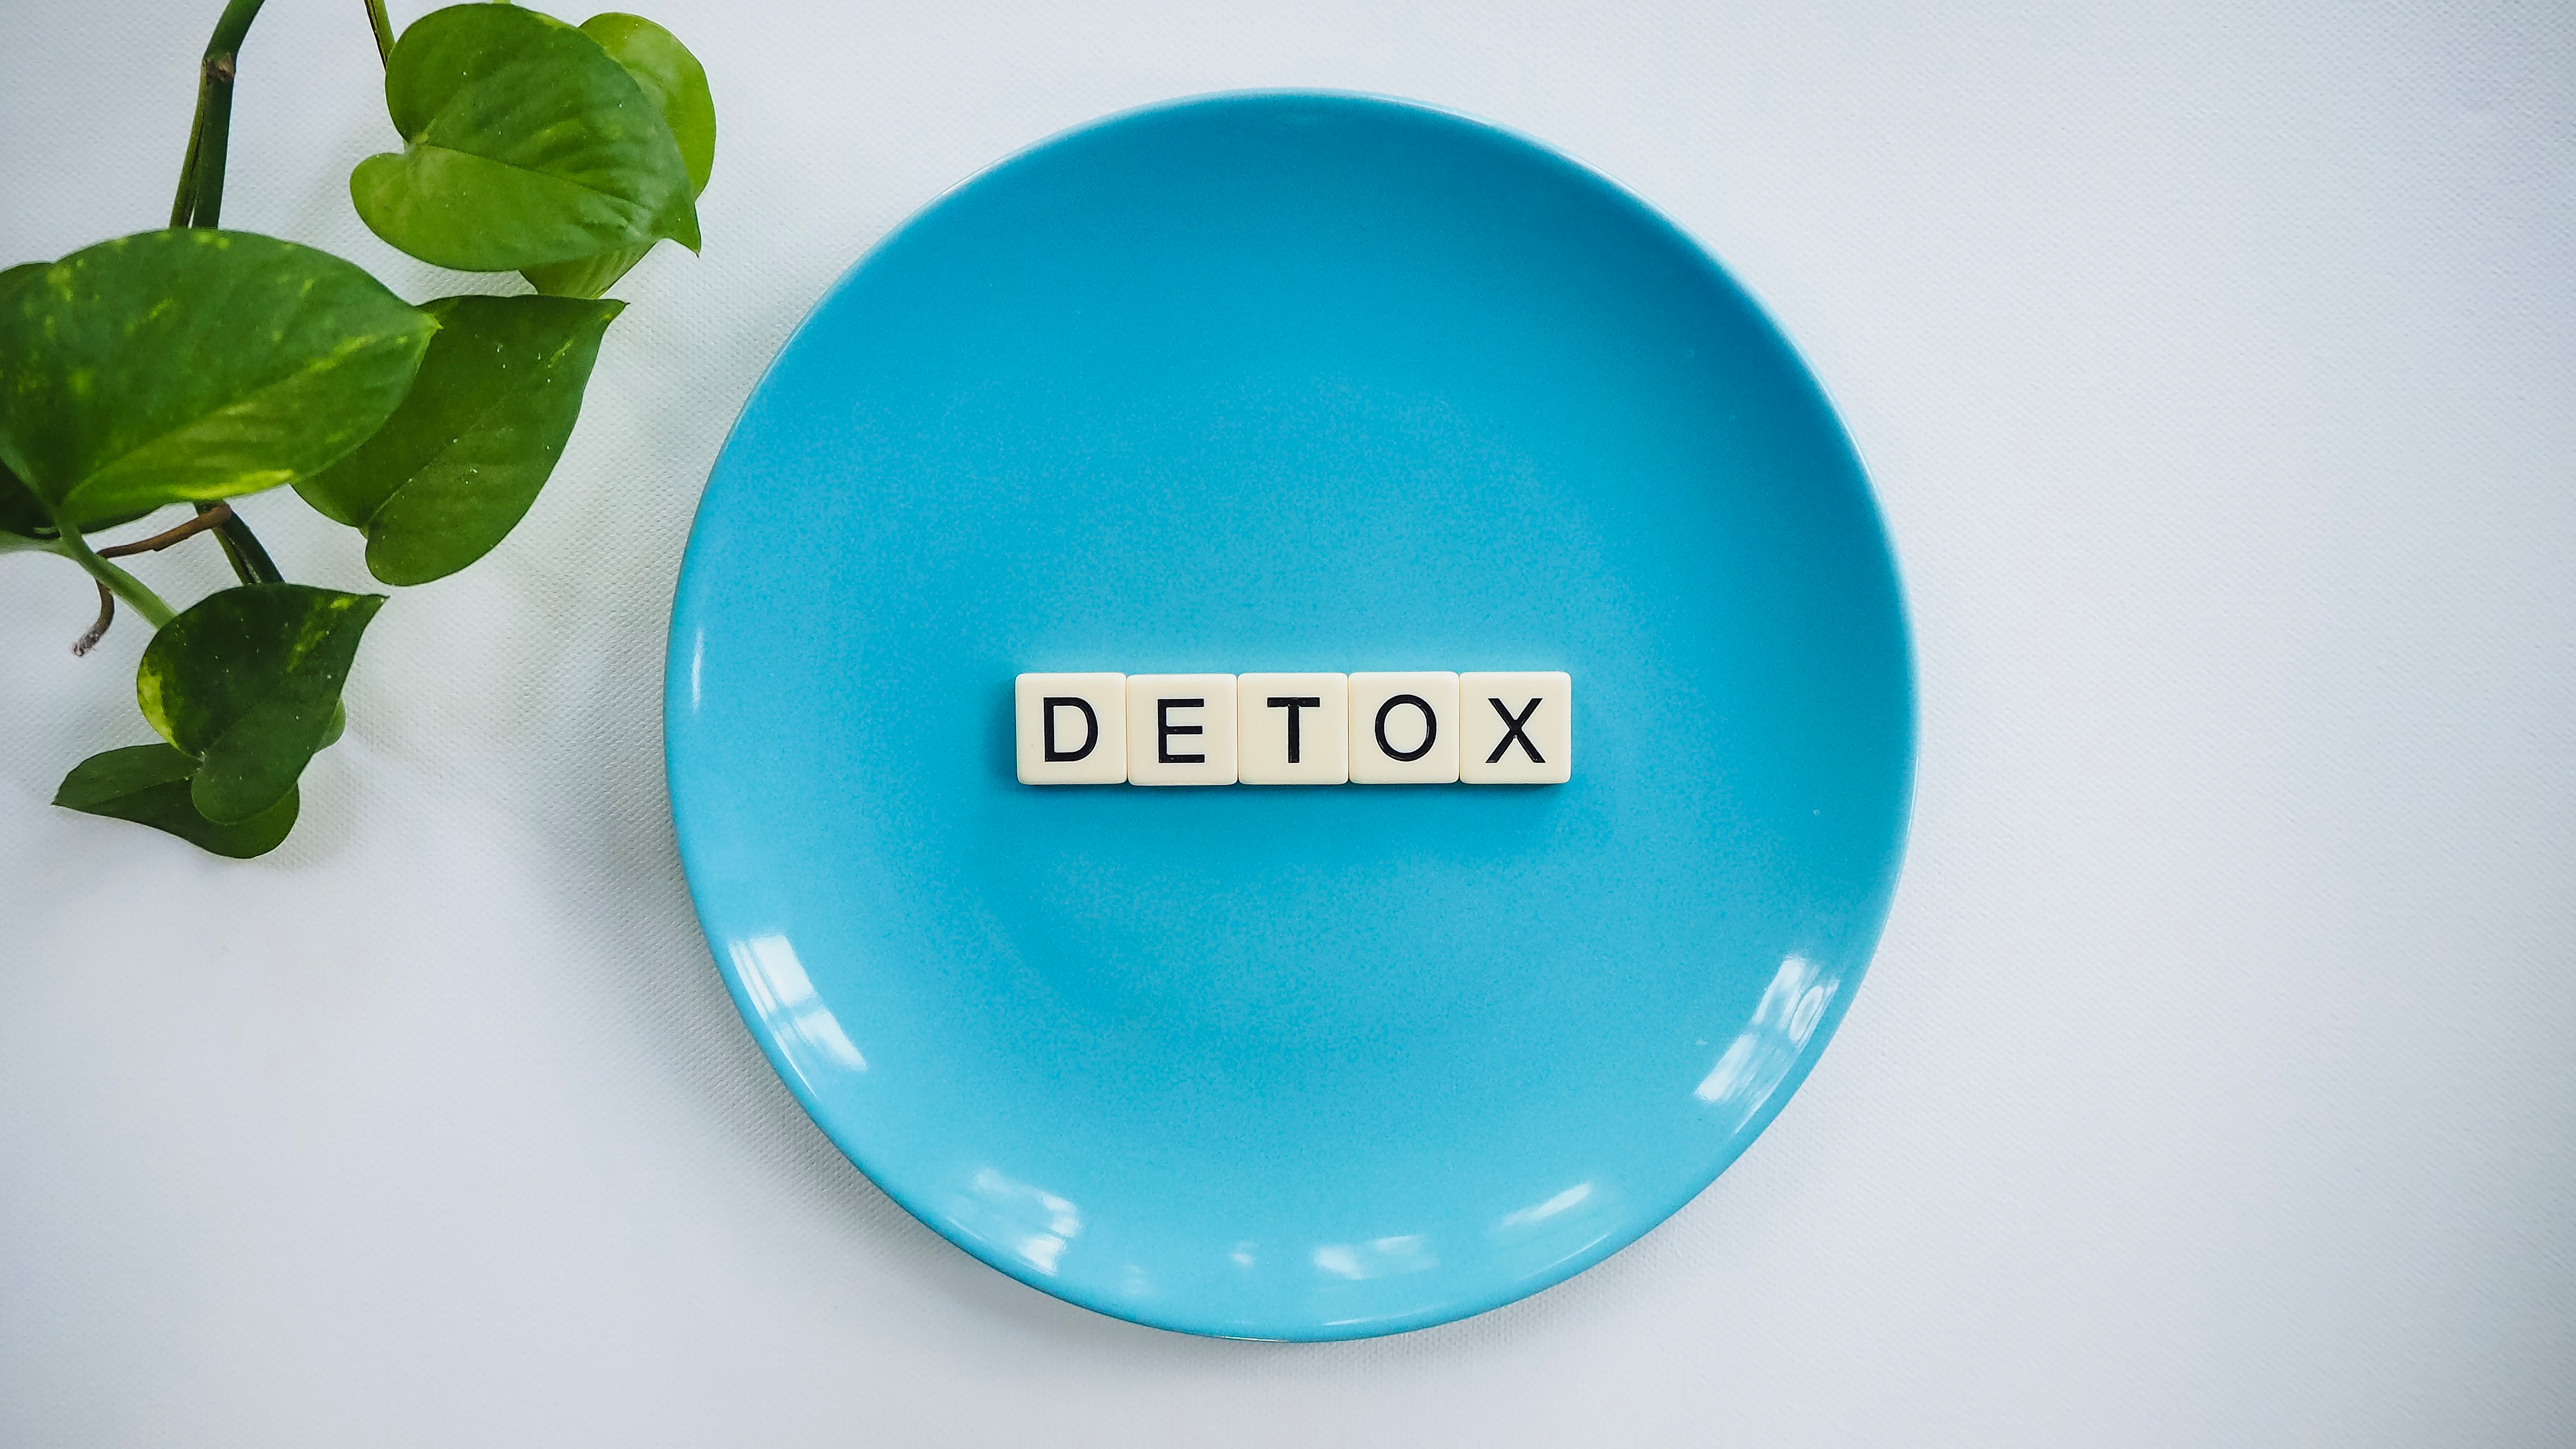 Detox Text on Round Blue Plate · Free Stock Photo